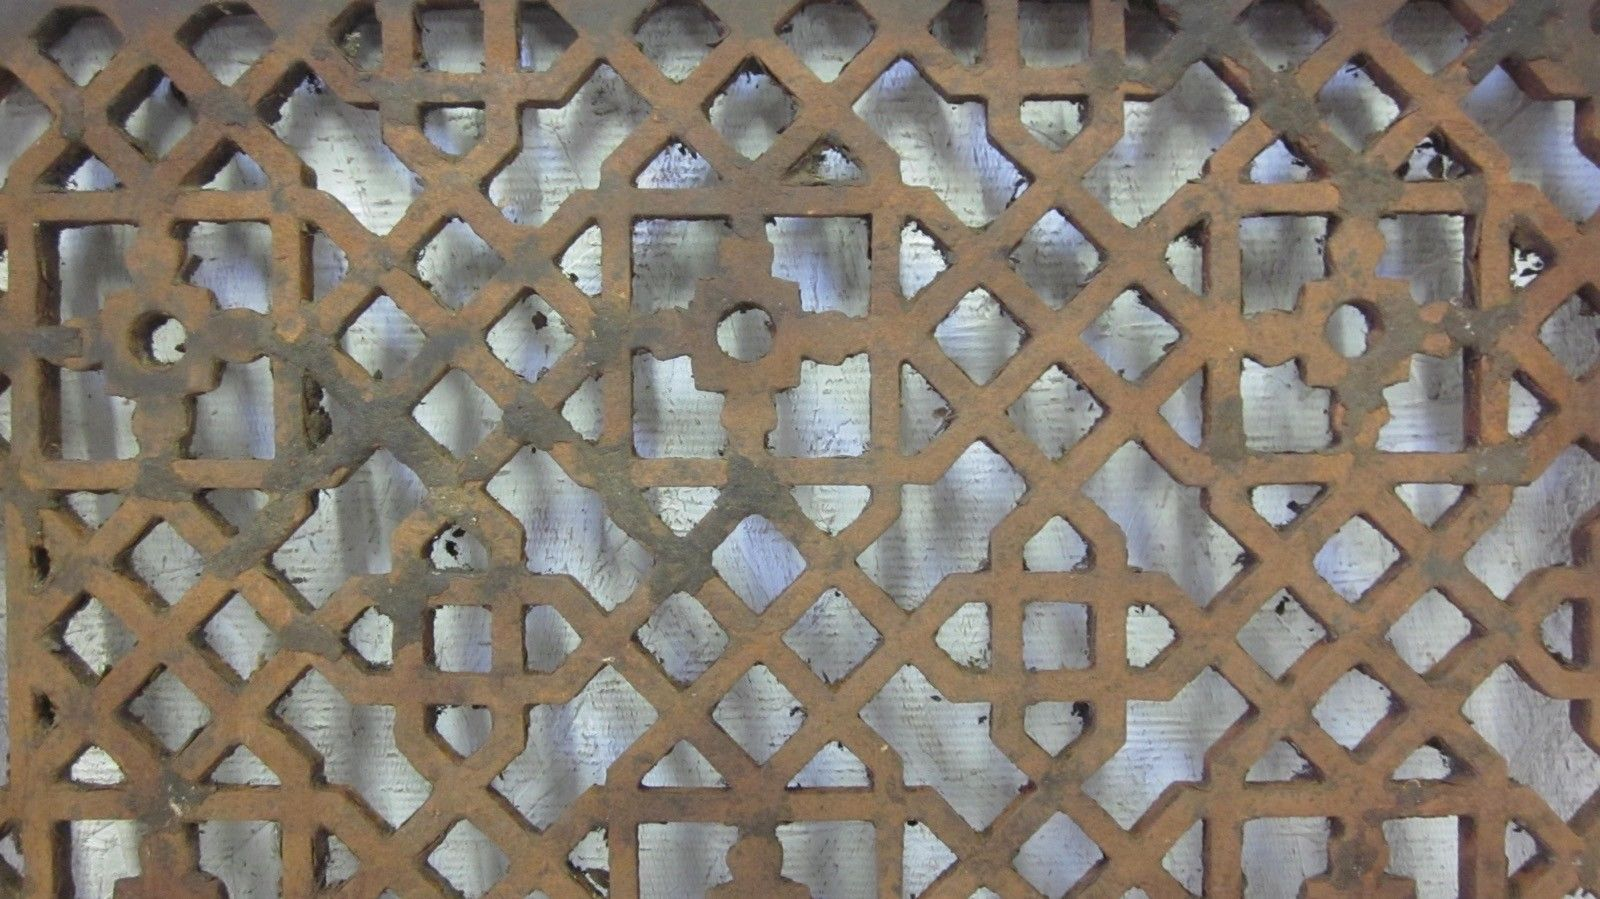 Antique Floor Wall 10 X 14 Furnace Cast Iron Hot Air Register Heat Grate Antique Flooring Furnace Antiques